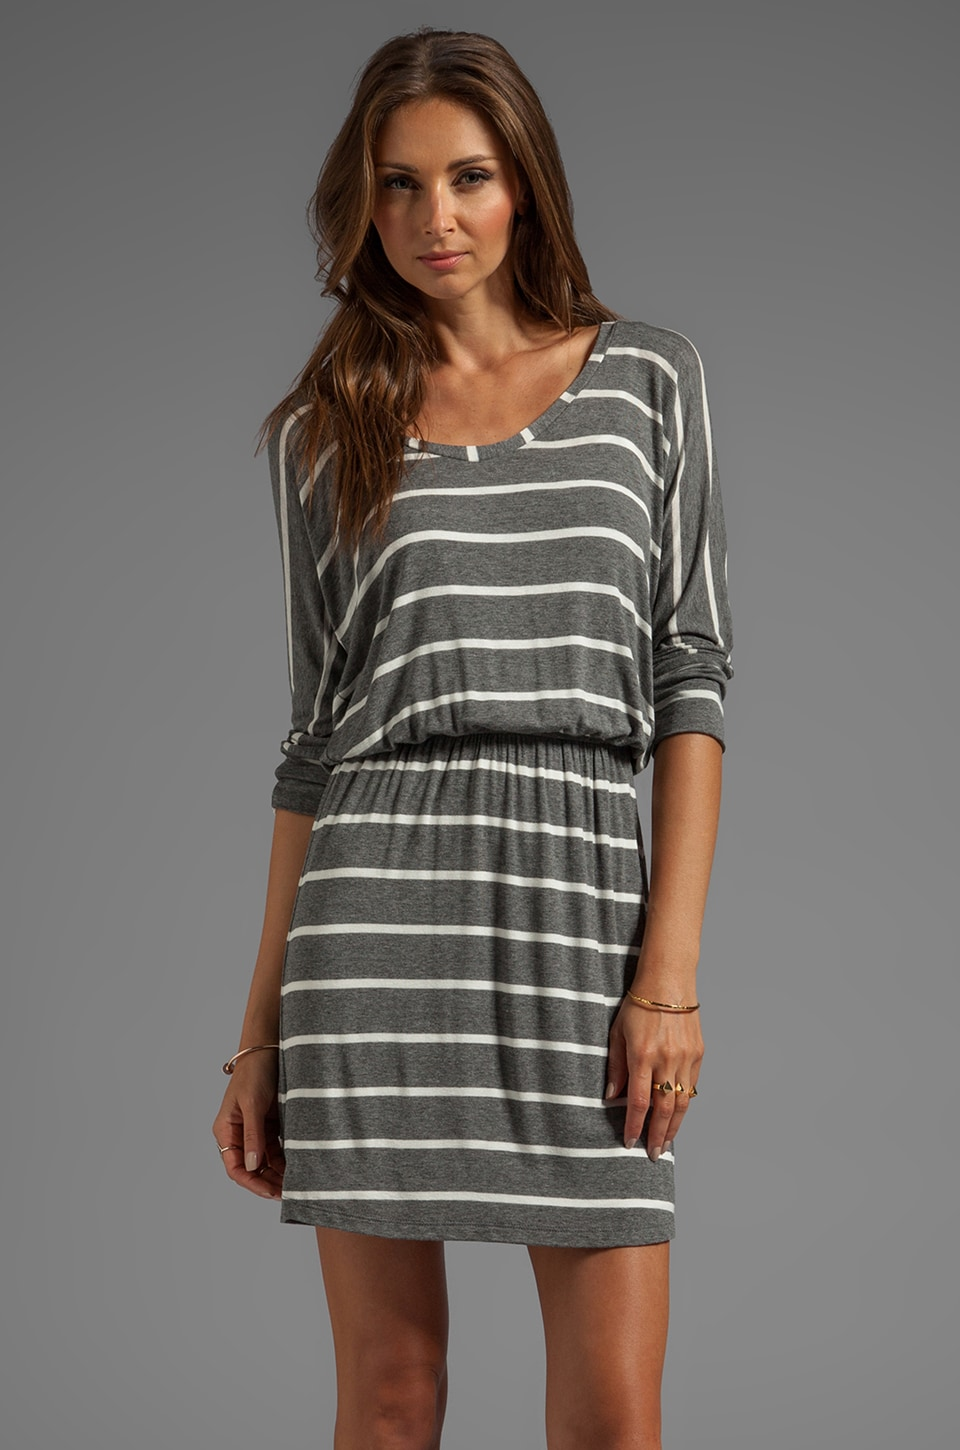 Splendid Short Sleeve Striped Mini Dress in Steel